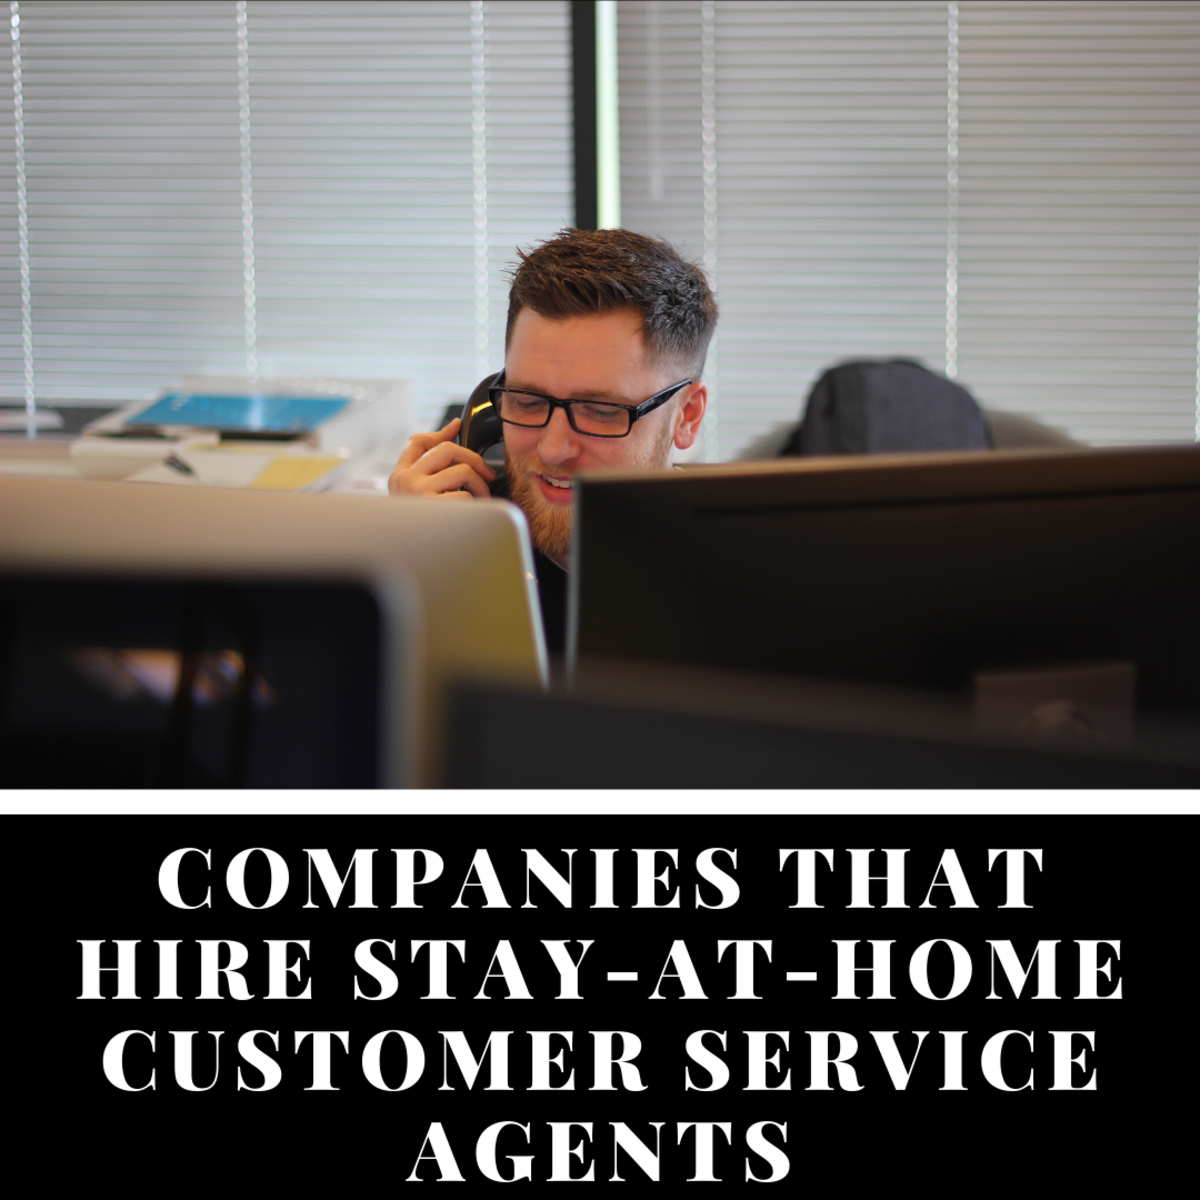 Companies Hiring Stay-At-Home Customer Service Agents